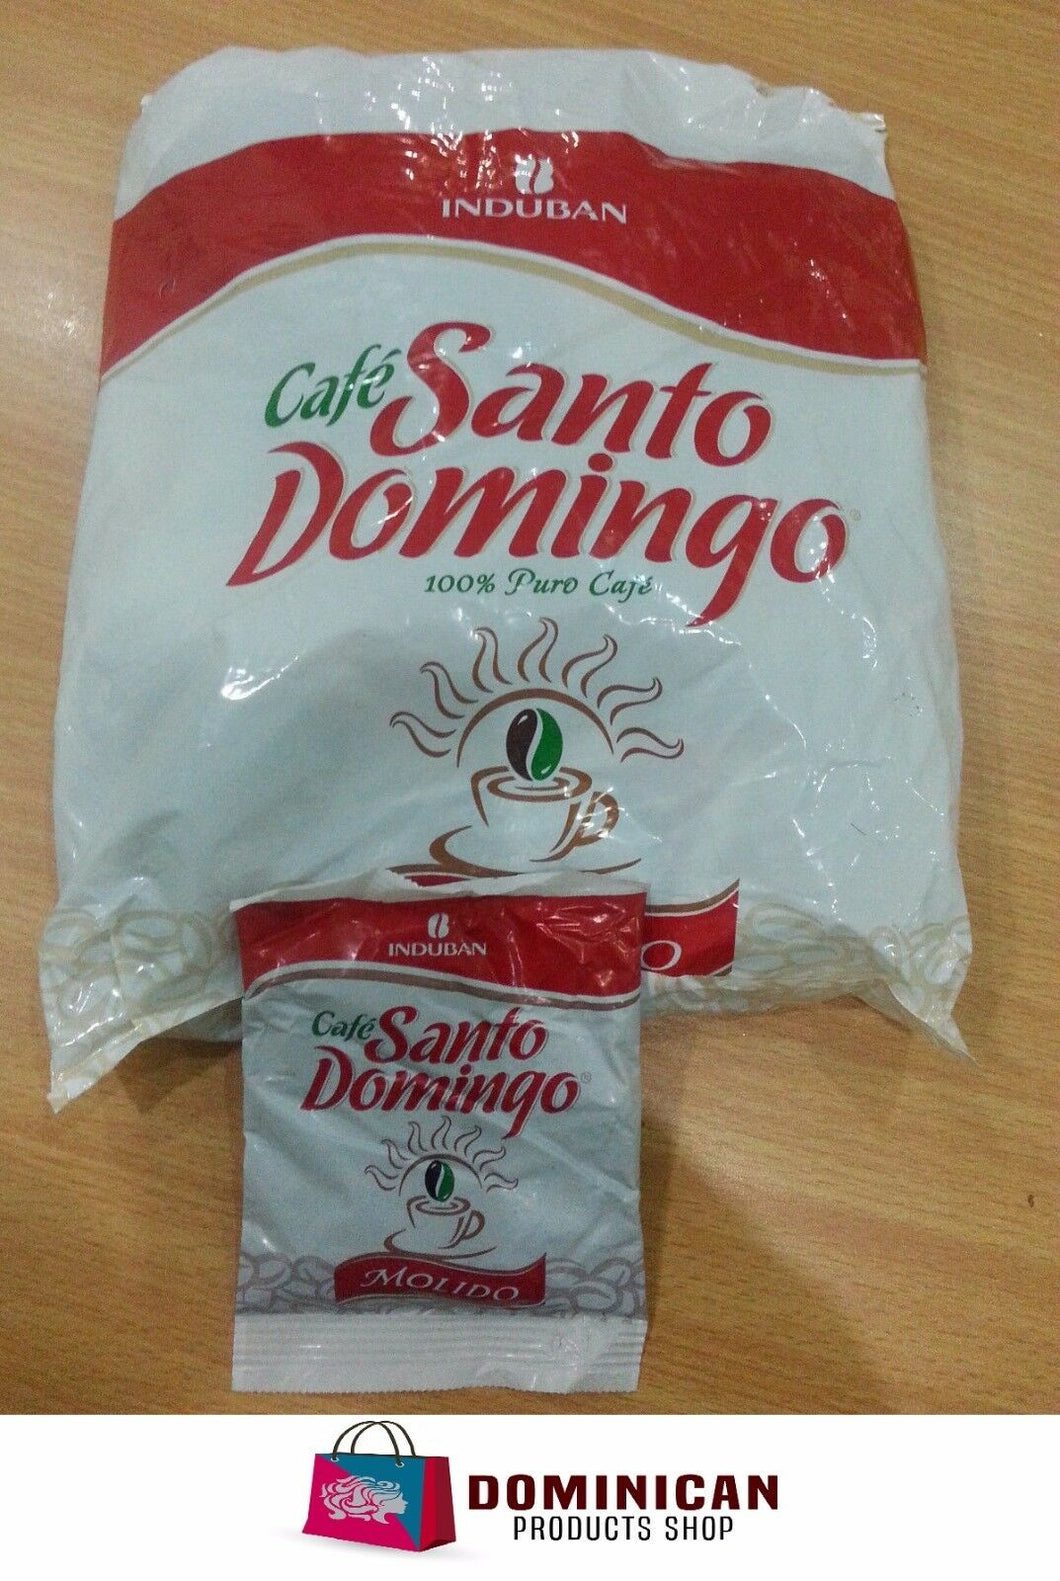 CAFE SANTO DOMINGO THE BEST DOMINICAN GROUNDED COFFEE 12 SACHETS ENVELOPES